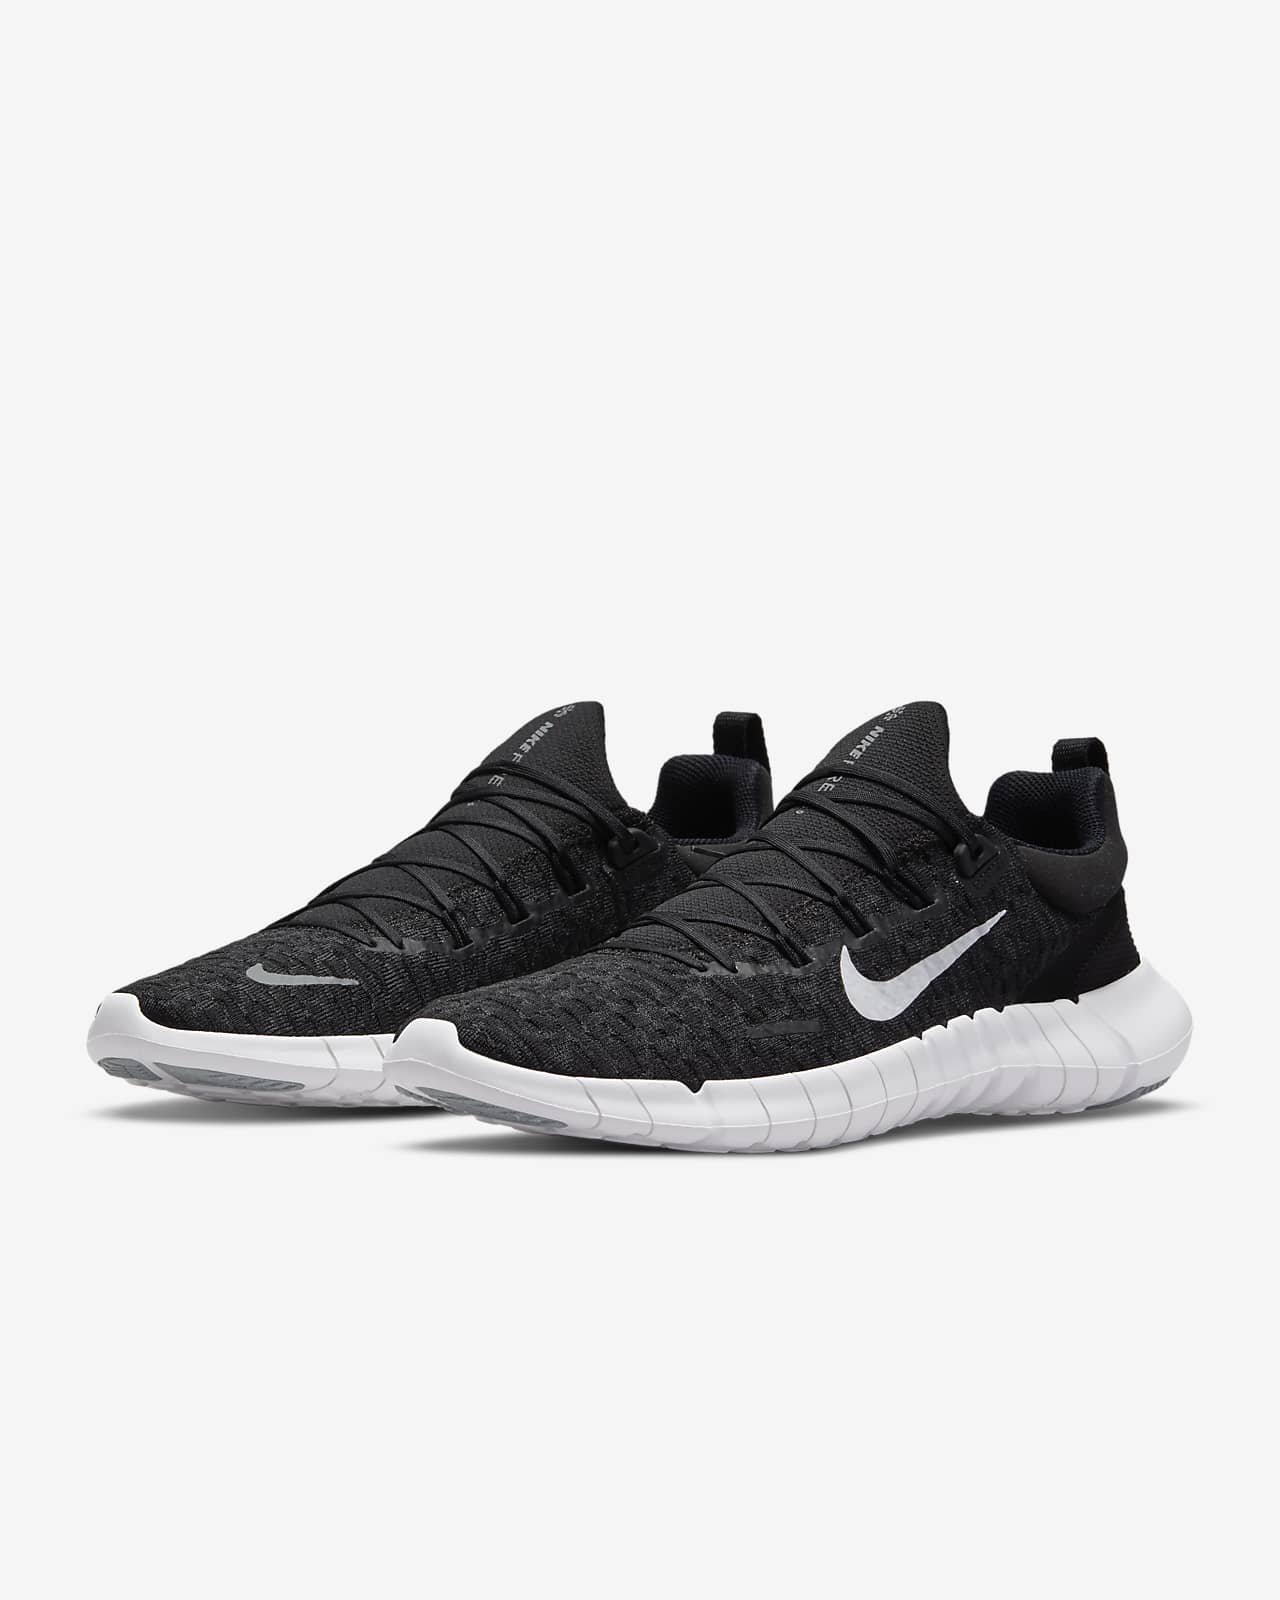 Chaussures de running Nike Free Run 5.0 pour Homme